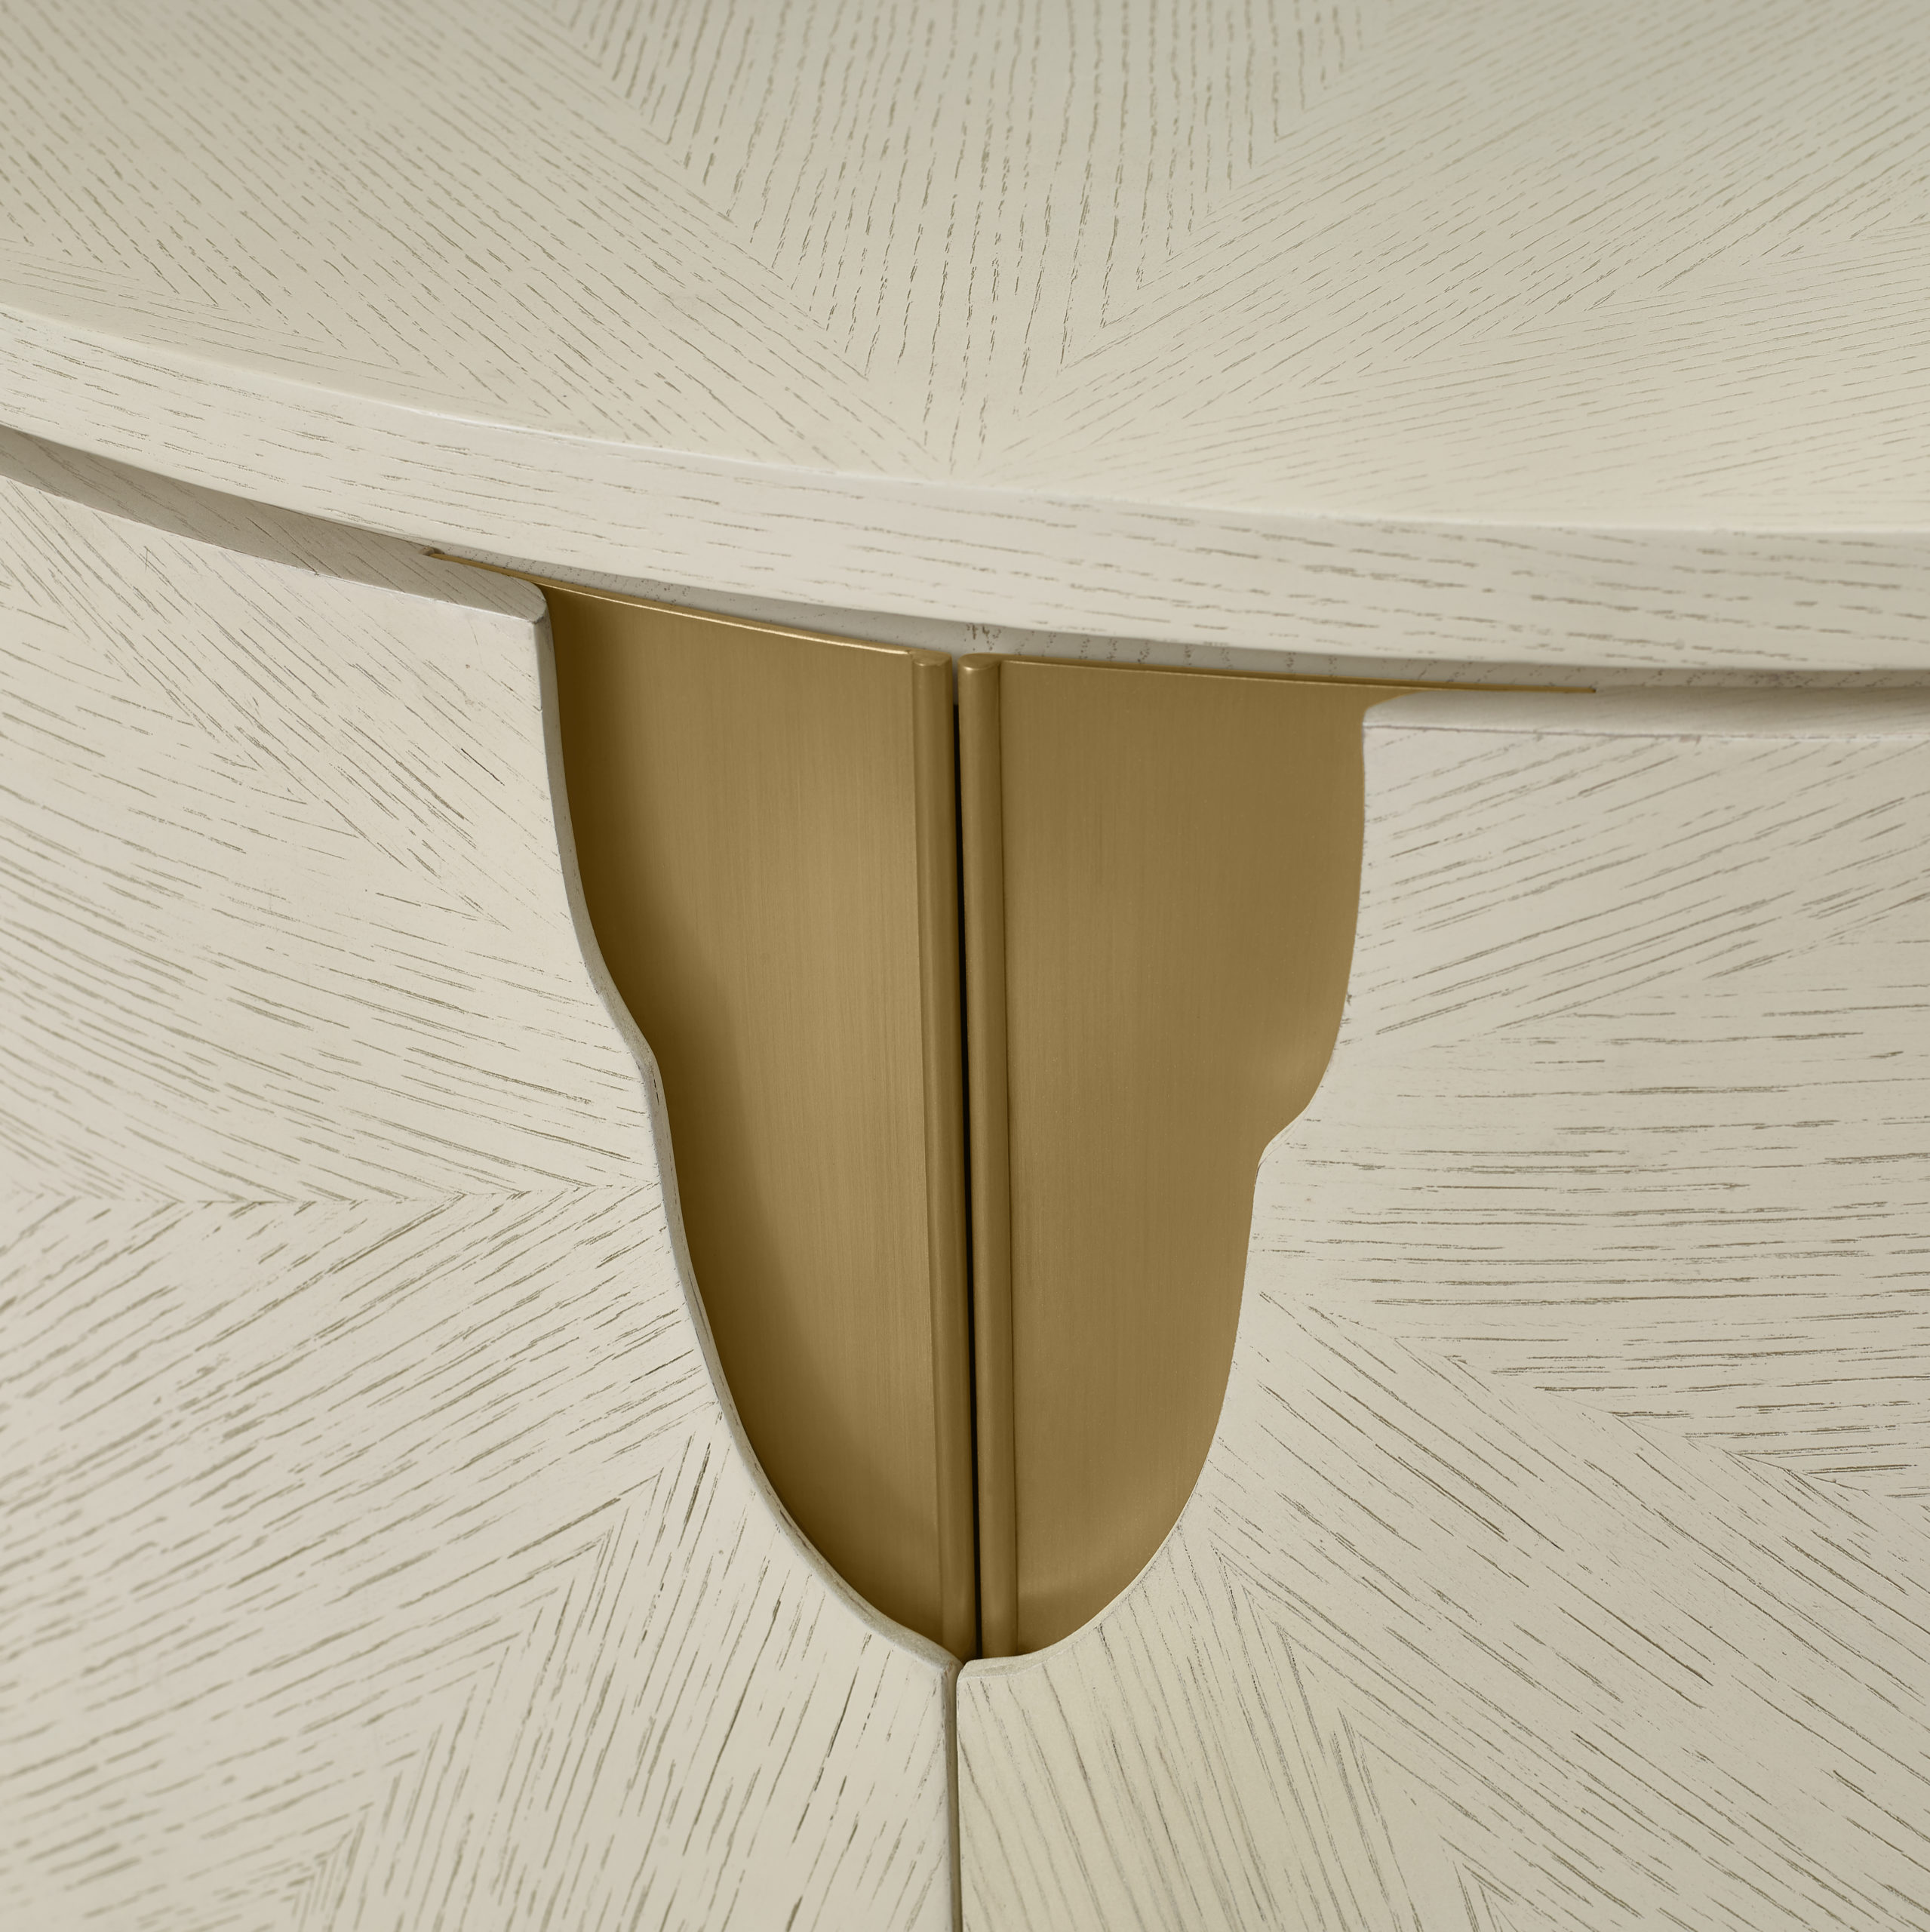 Baker_products_WNWN_dover_bedside_table_BAA3209_DETAIL-scaled-2